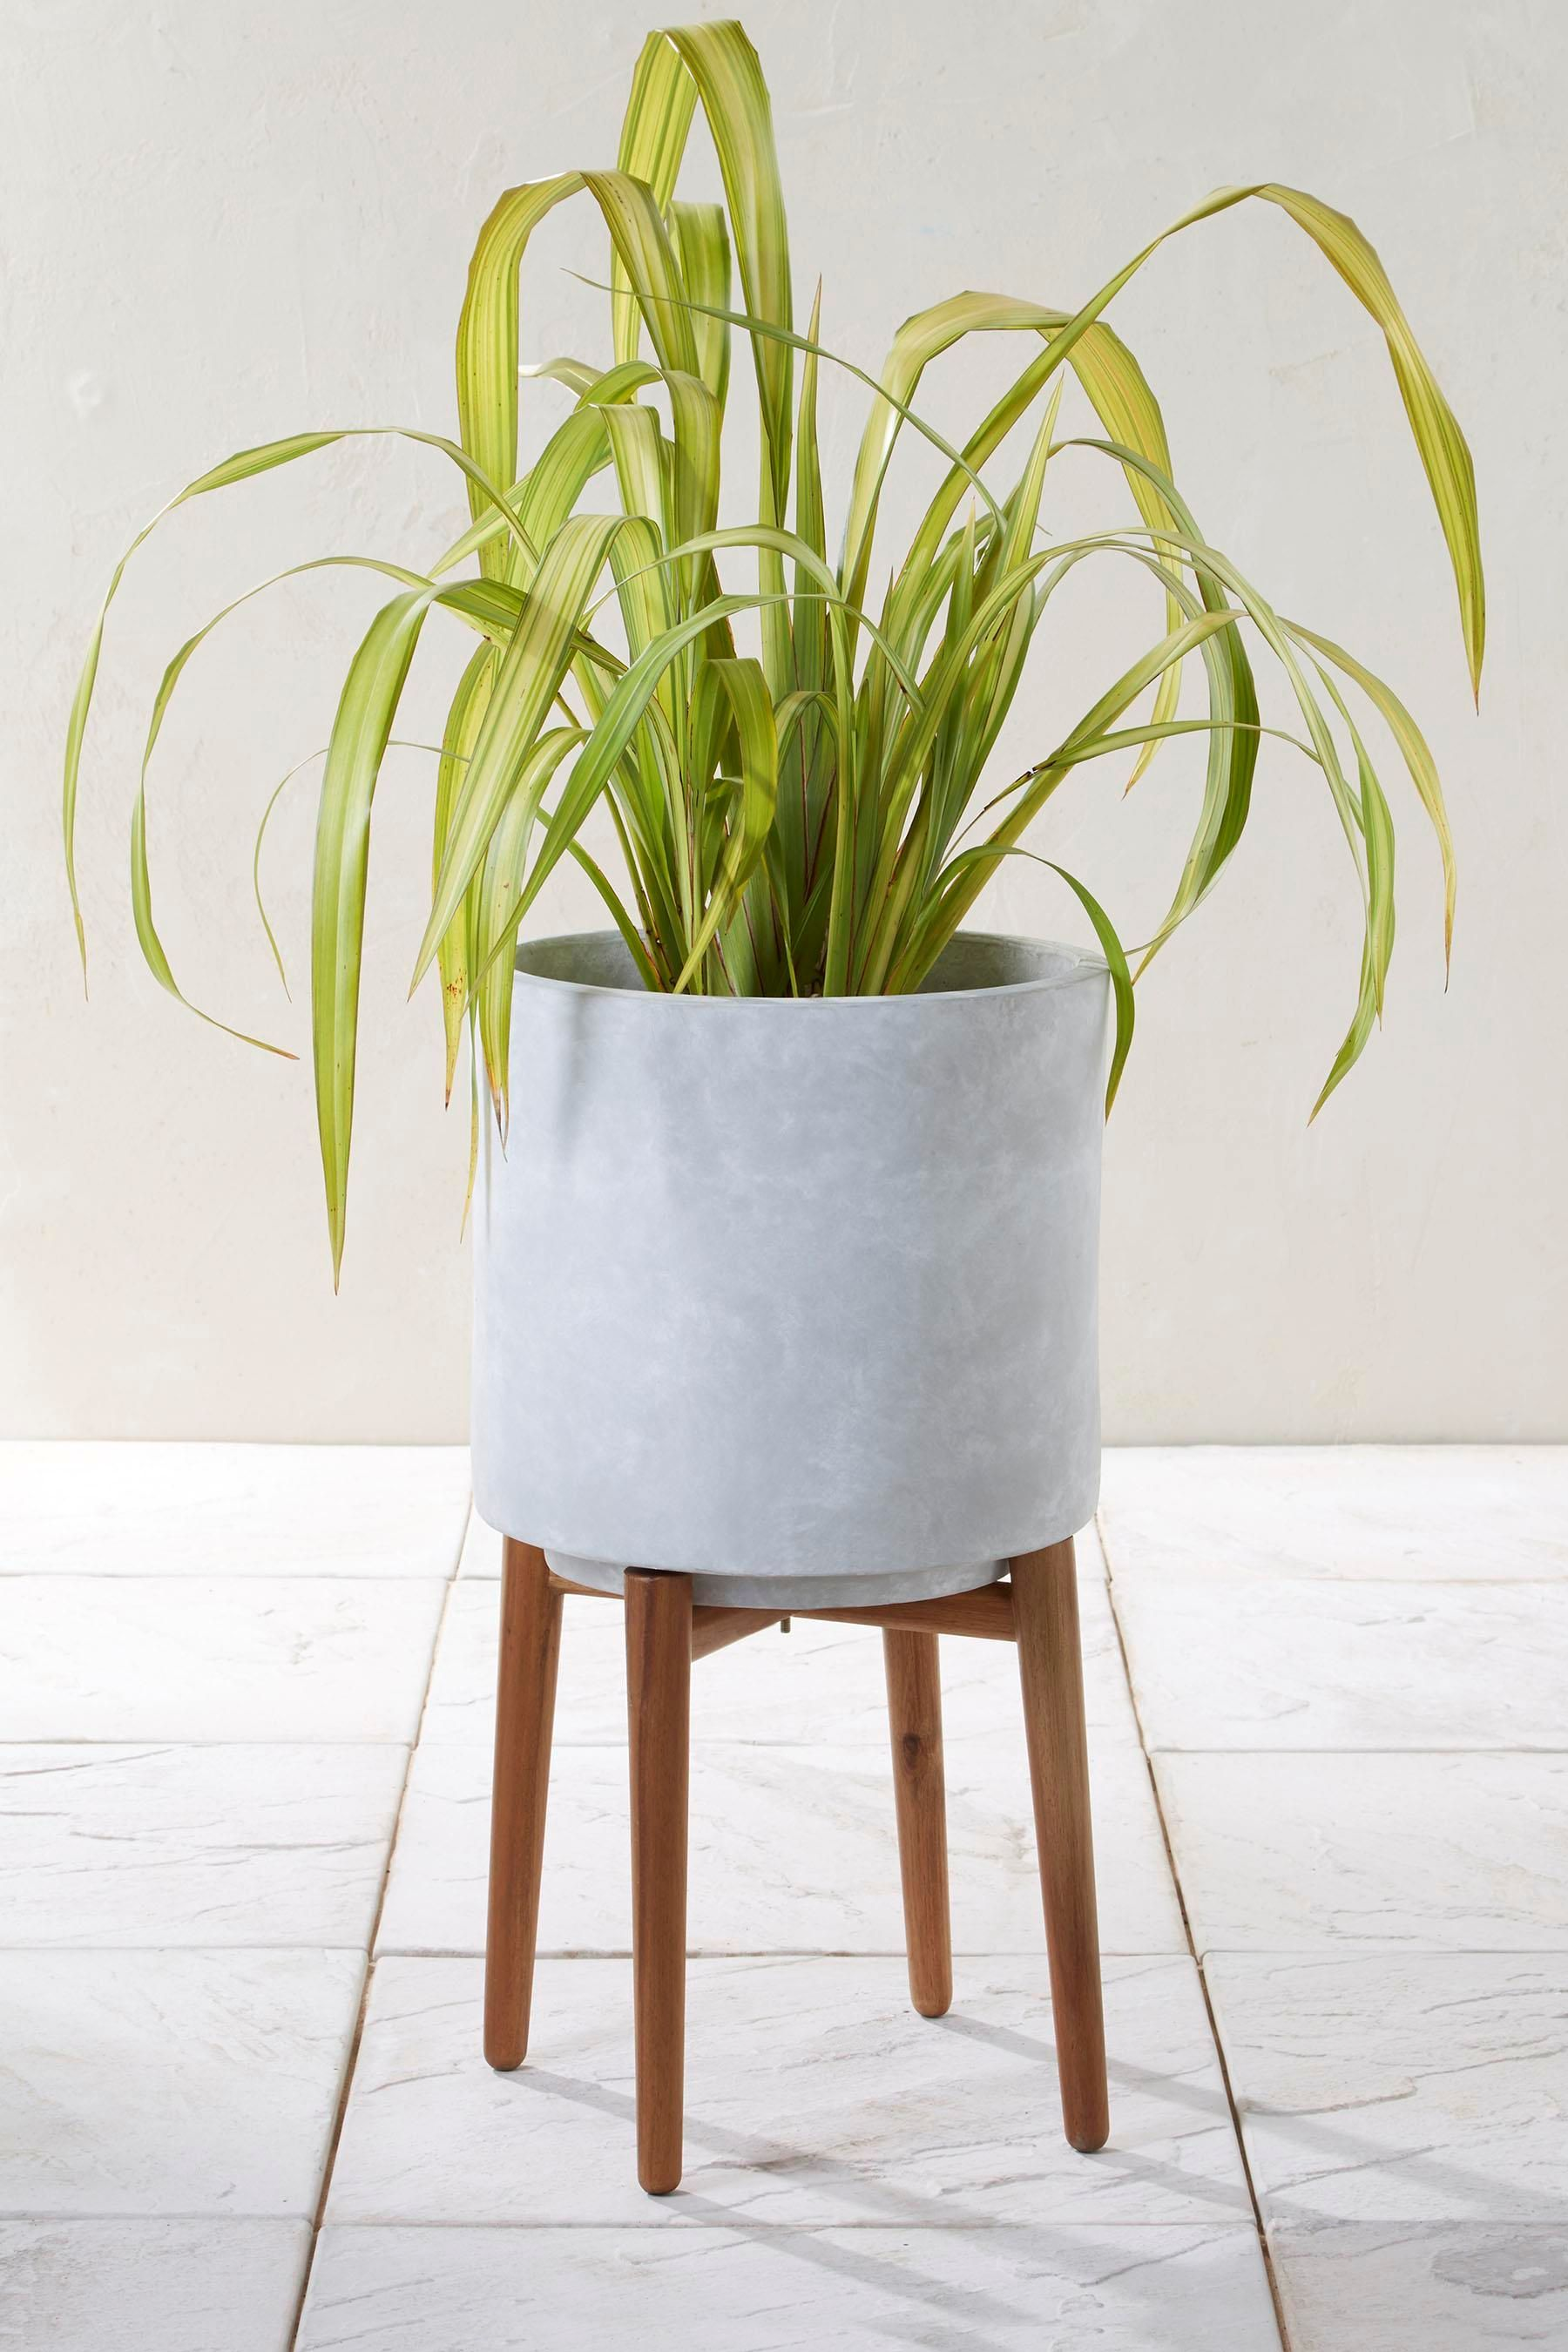 Buy Tall Concrete Planter With Wooden Legs From The Next Uk Online